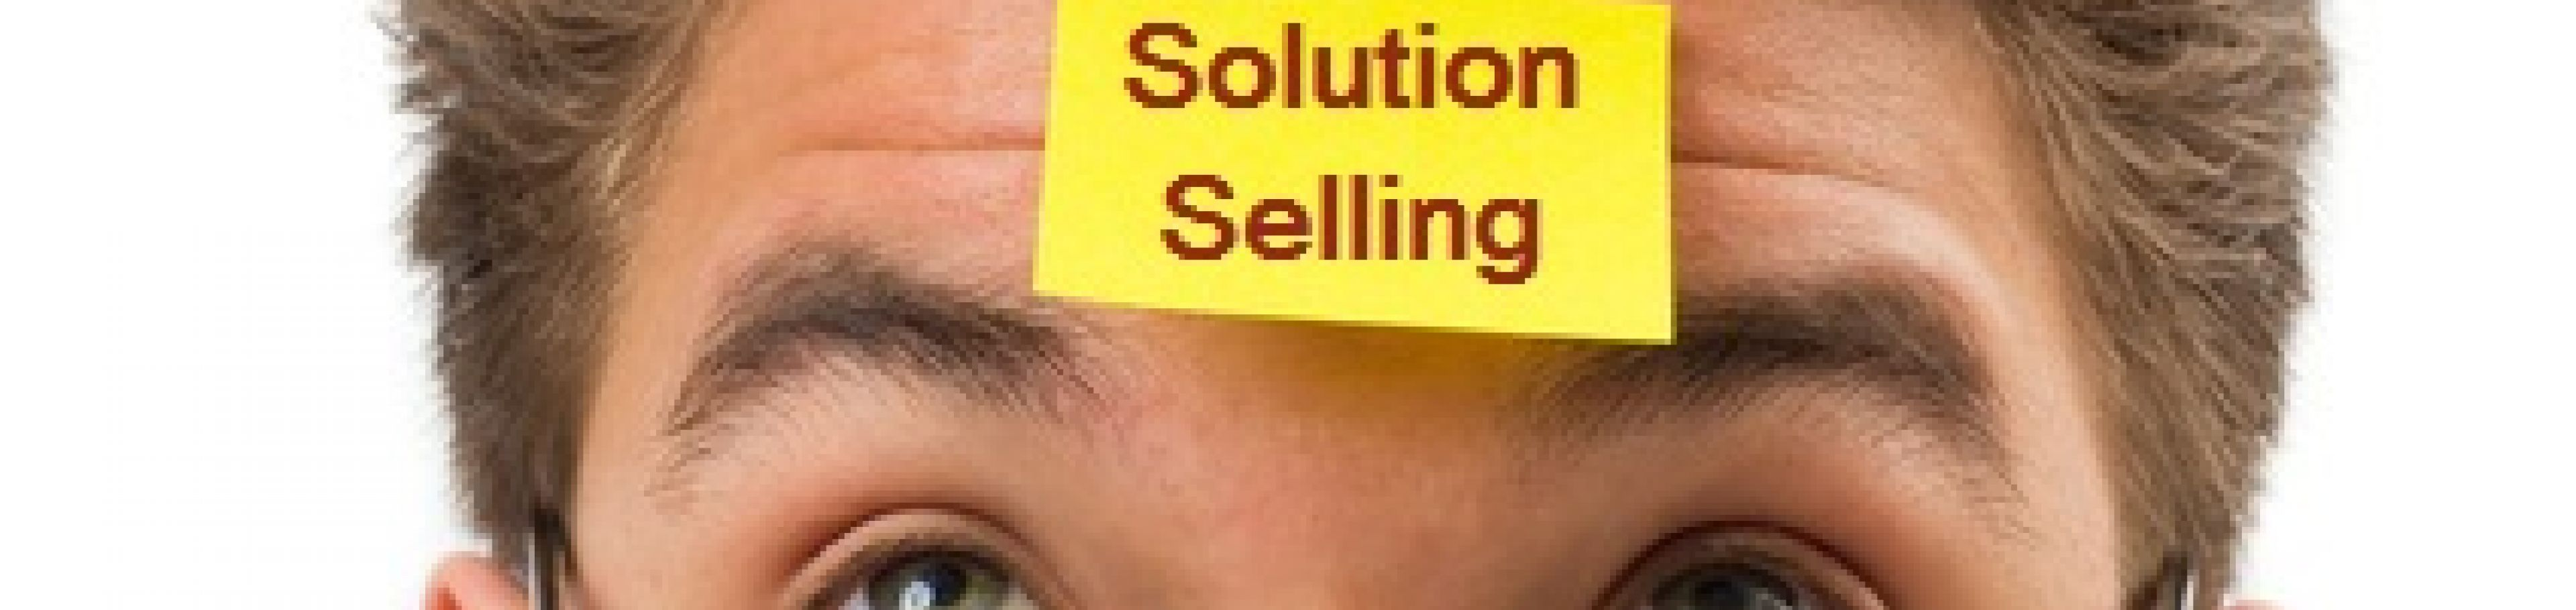 Was ist Solution Selling?